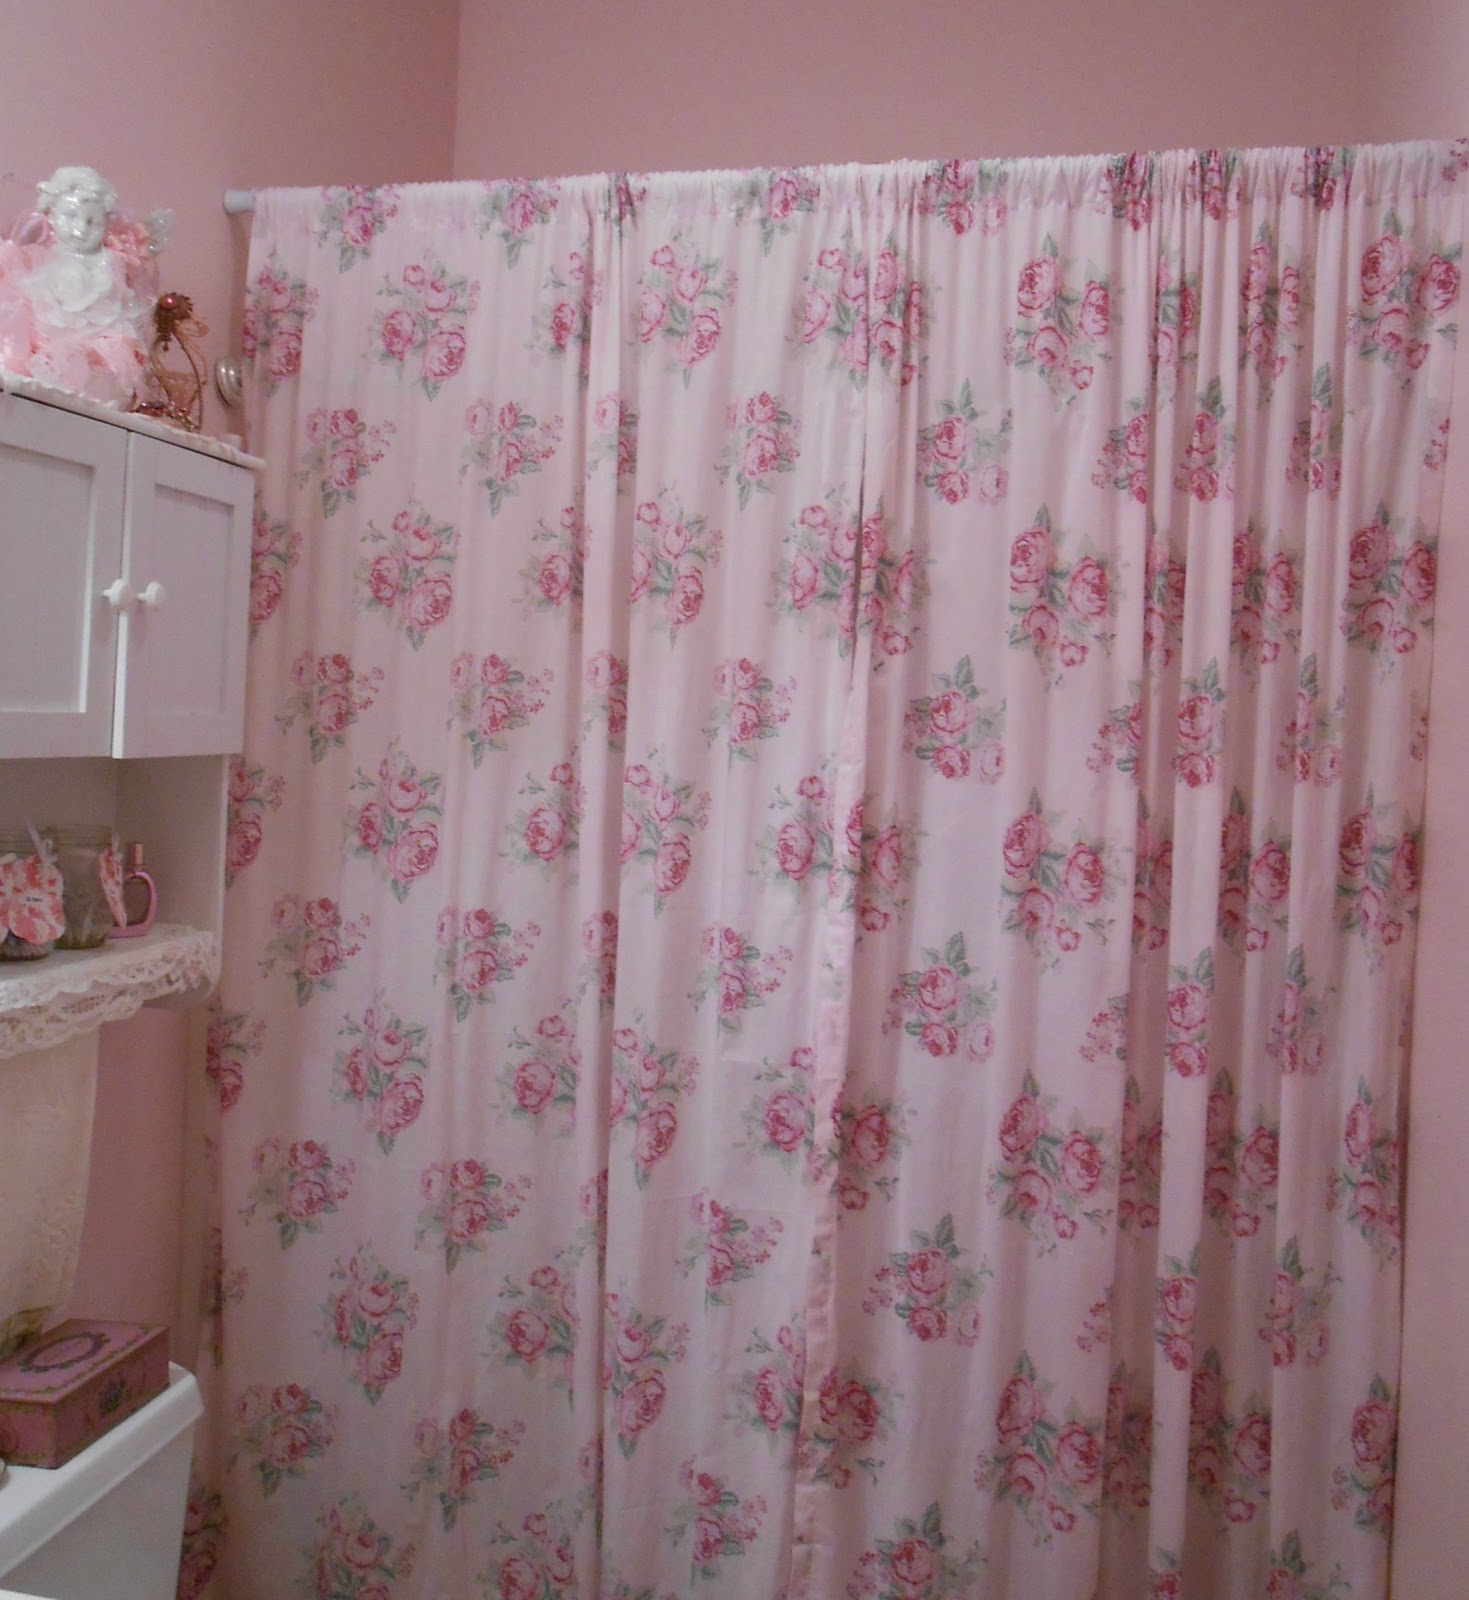 Thi S Is A Shot Of My New Pink Bathroom Shower Curtain